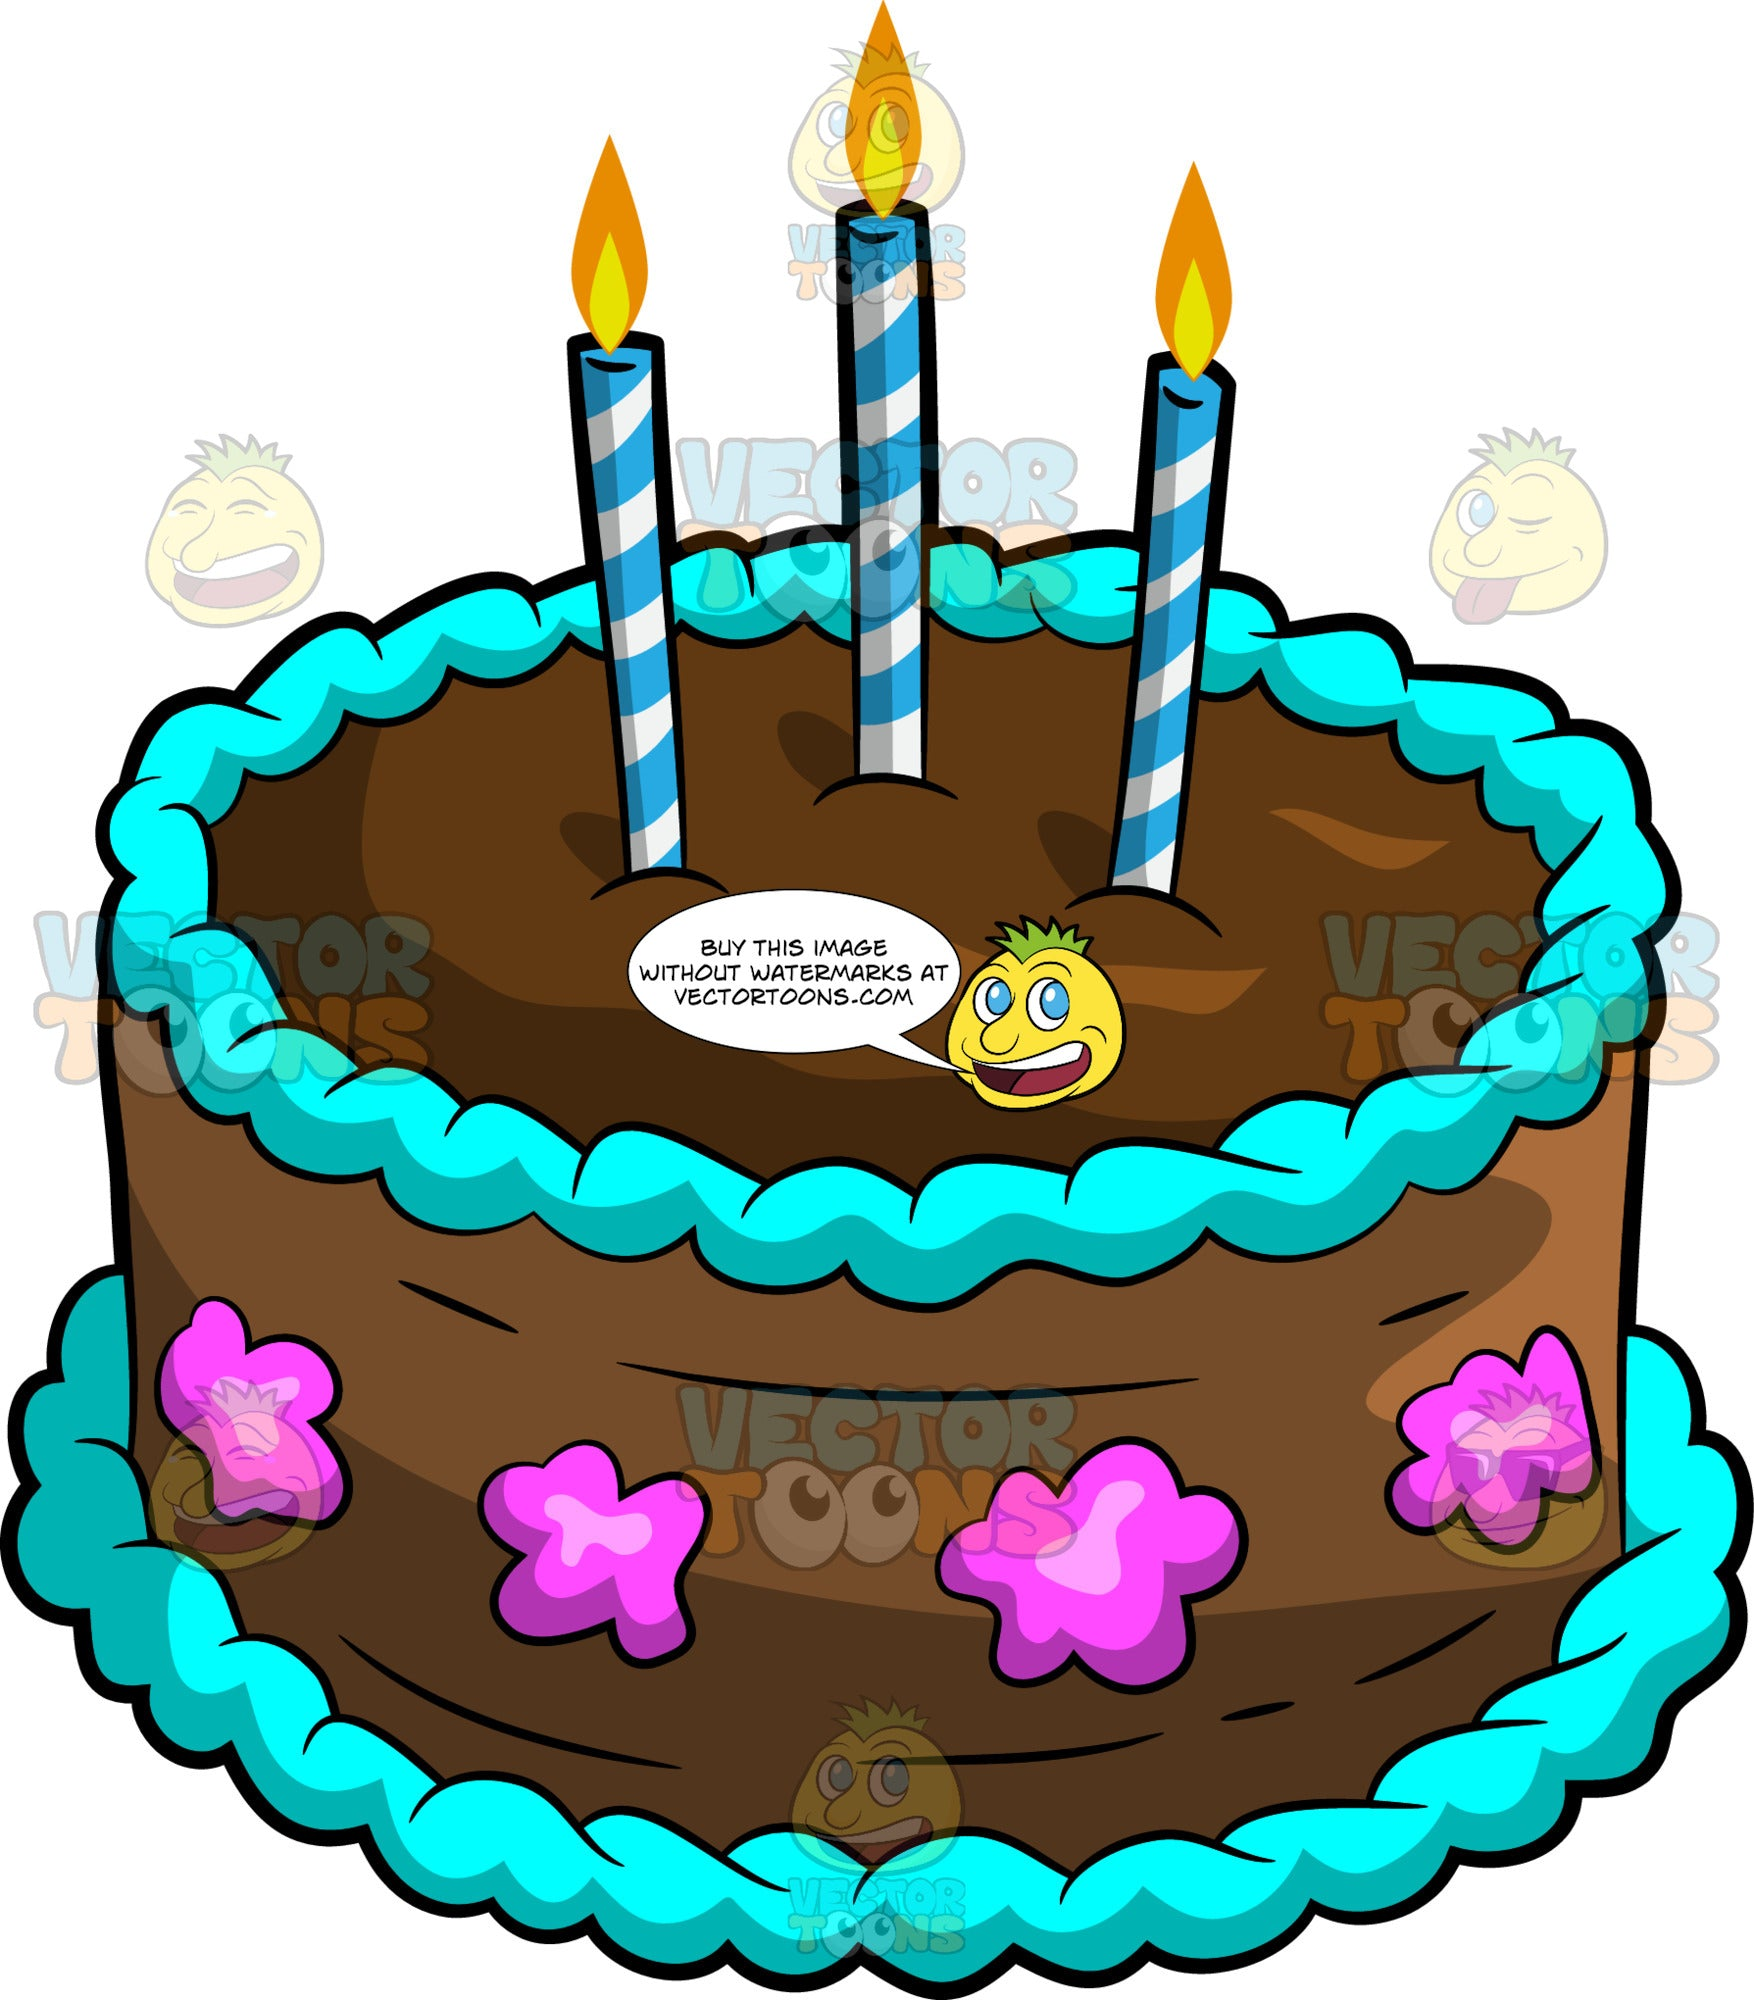 Remarkable A Chocolate Birthday Cake With Candles Clipart Cartoons By Funny Birthday Cards Online Elaedamsfinfo